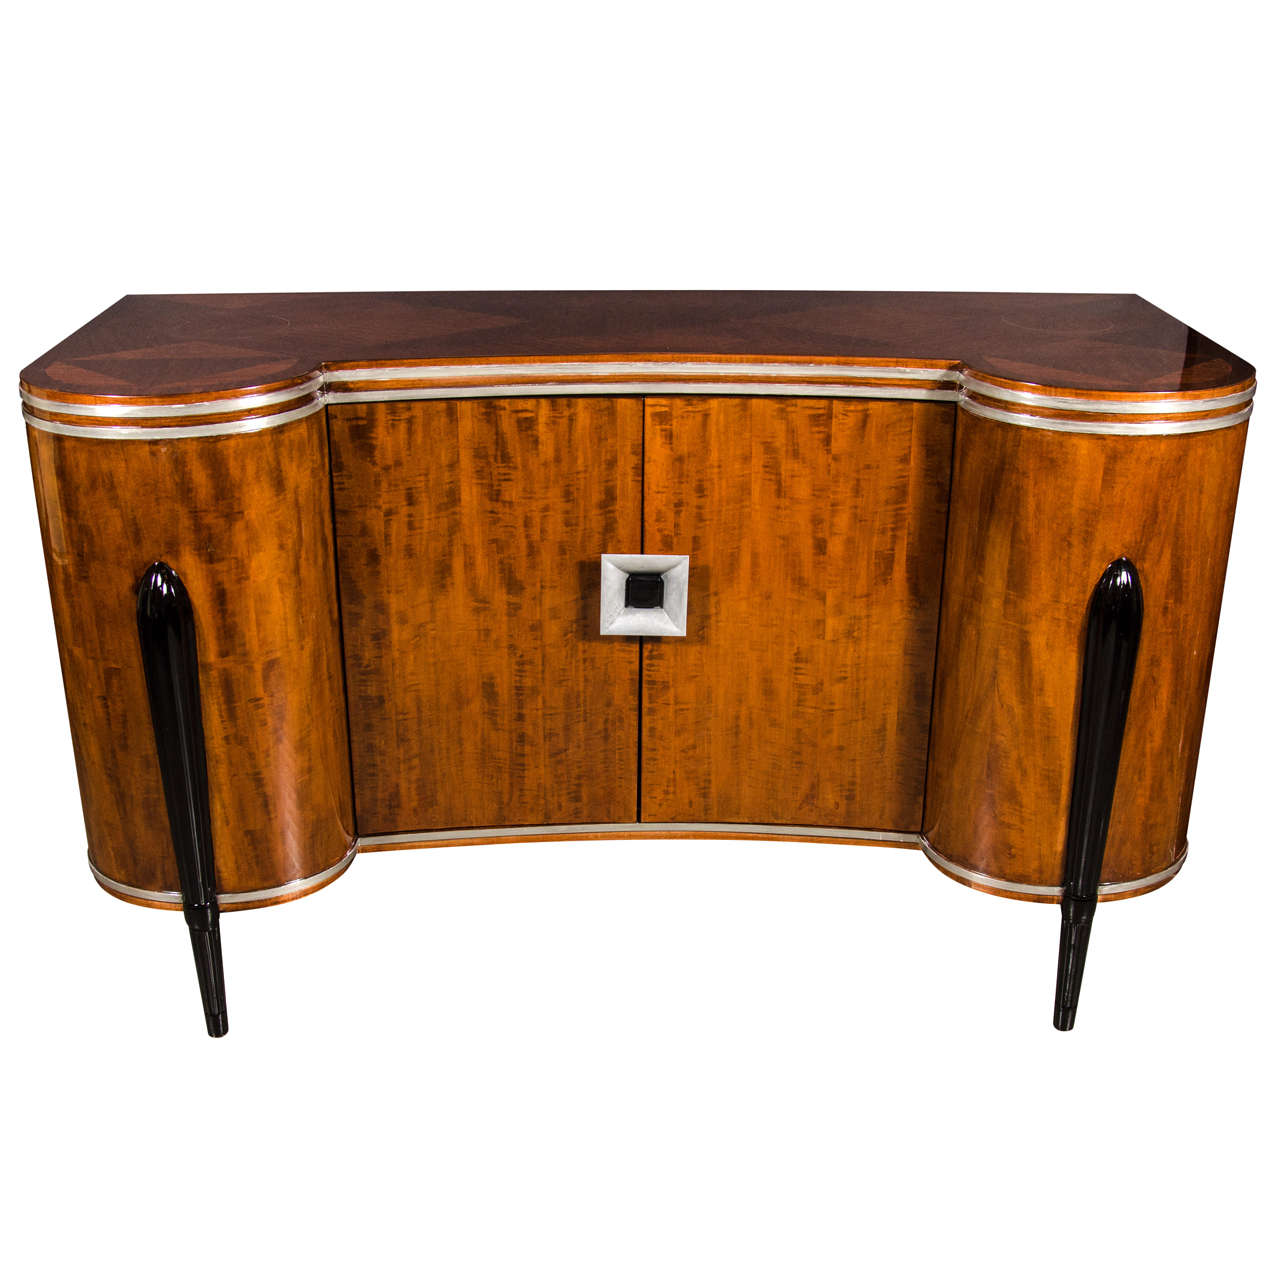 Cool Art Deco Kitchen Cabinets: Stunning Art Deco Buffet/Cabinet In The Manner Of Ruhlmann